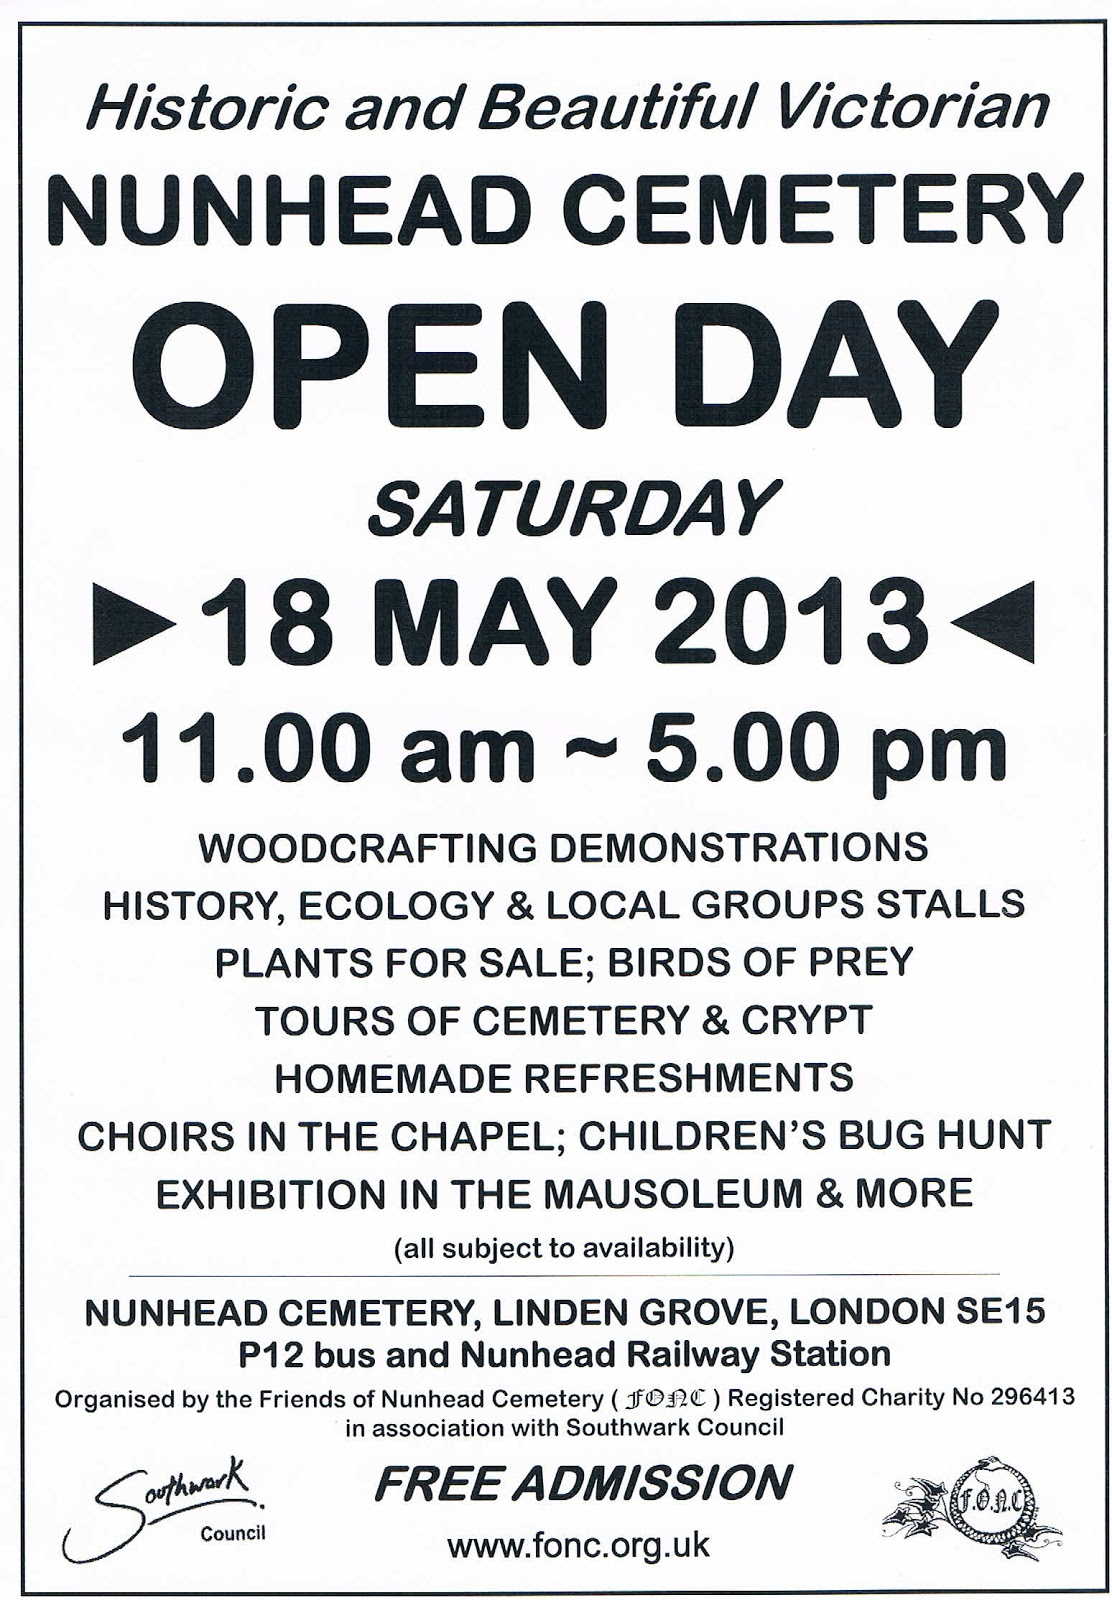 Nunhead Cemetery Open Day 2013 poster